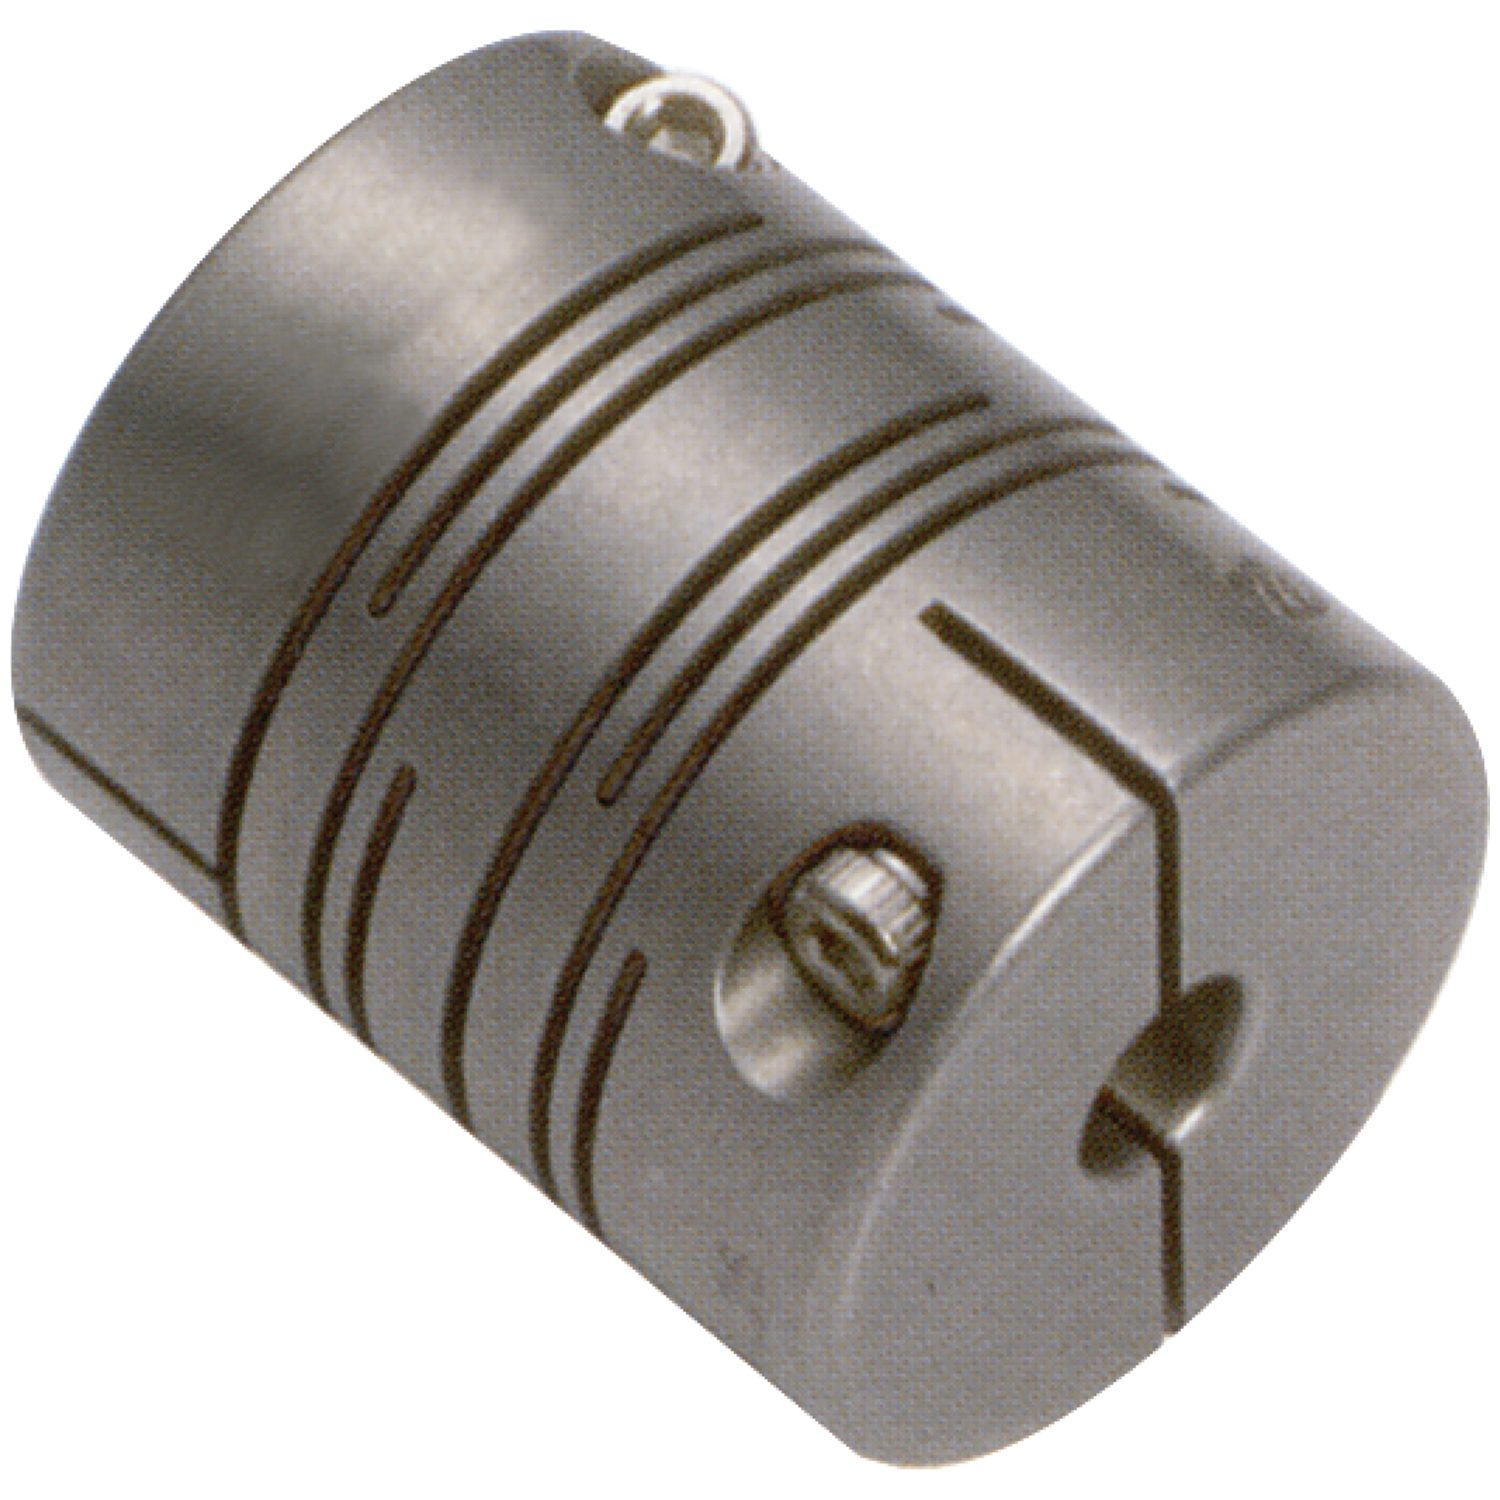 R3004 - Beamed Coupling - six beam